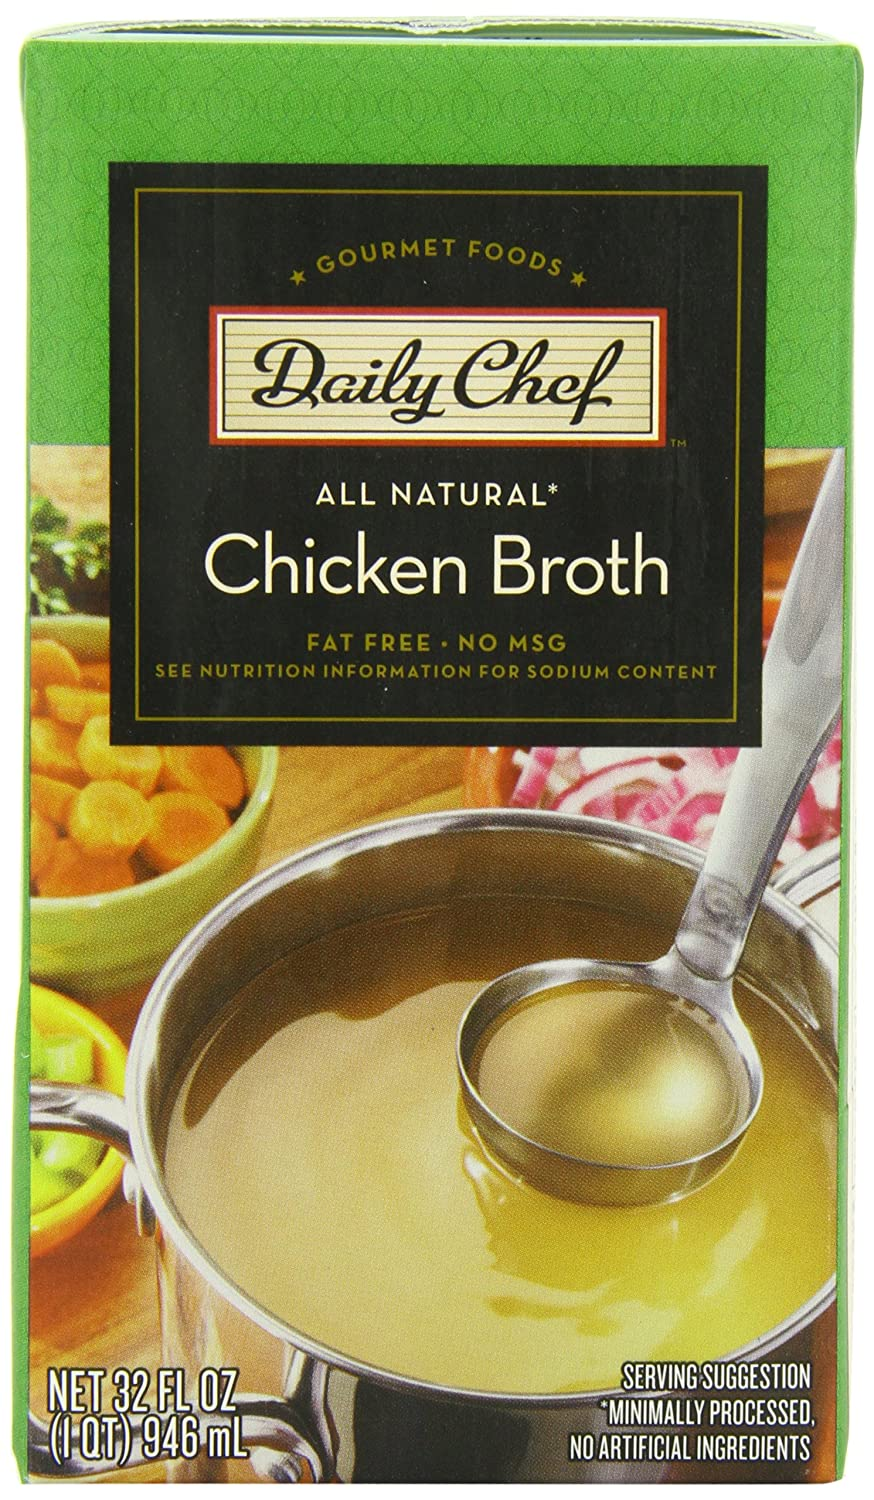 Daily Chef All Natural Chicken Broth, 1 Quart, 6 Count